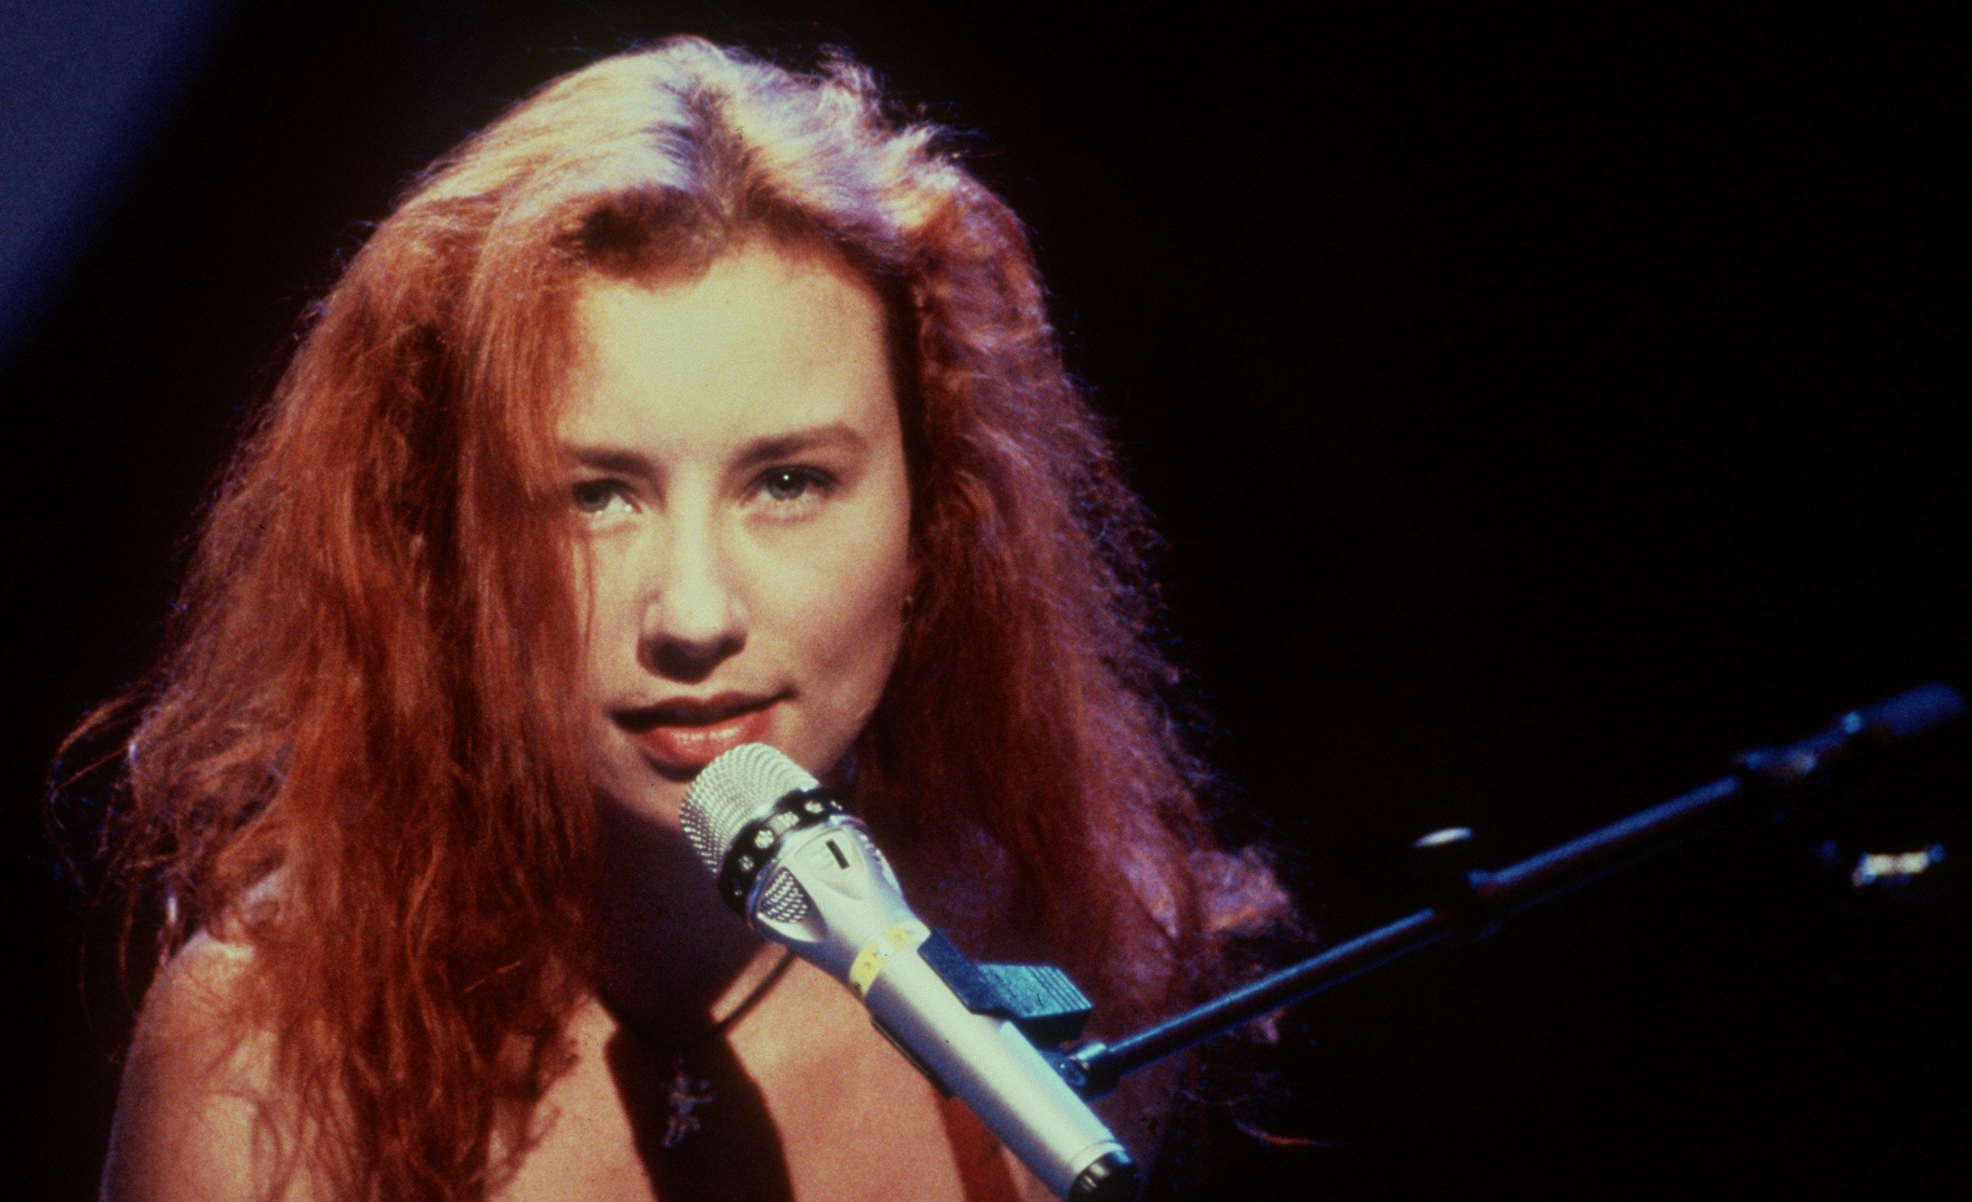 screen shot 2017 09 07 at 12 06 47 pm 10 Years and 10 Questions with Tori Amos